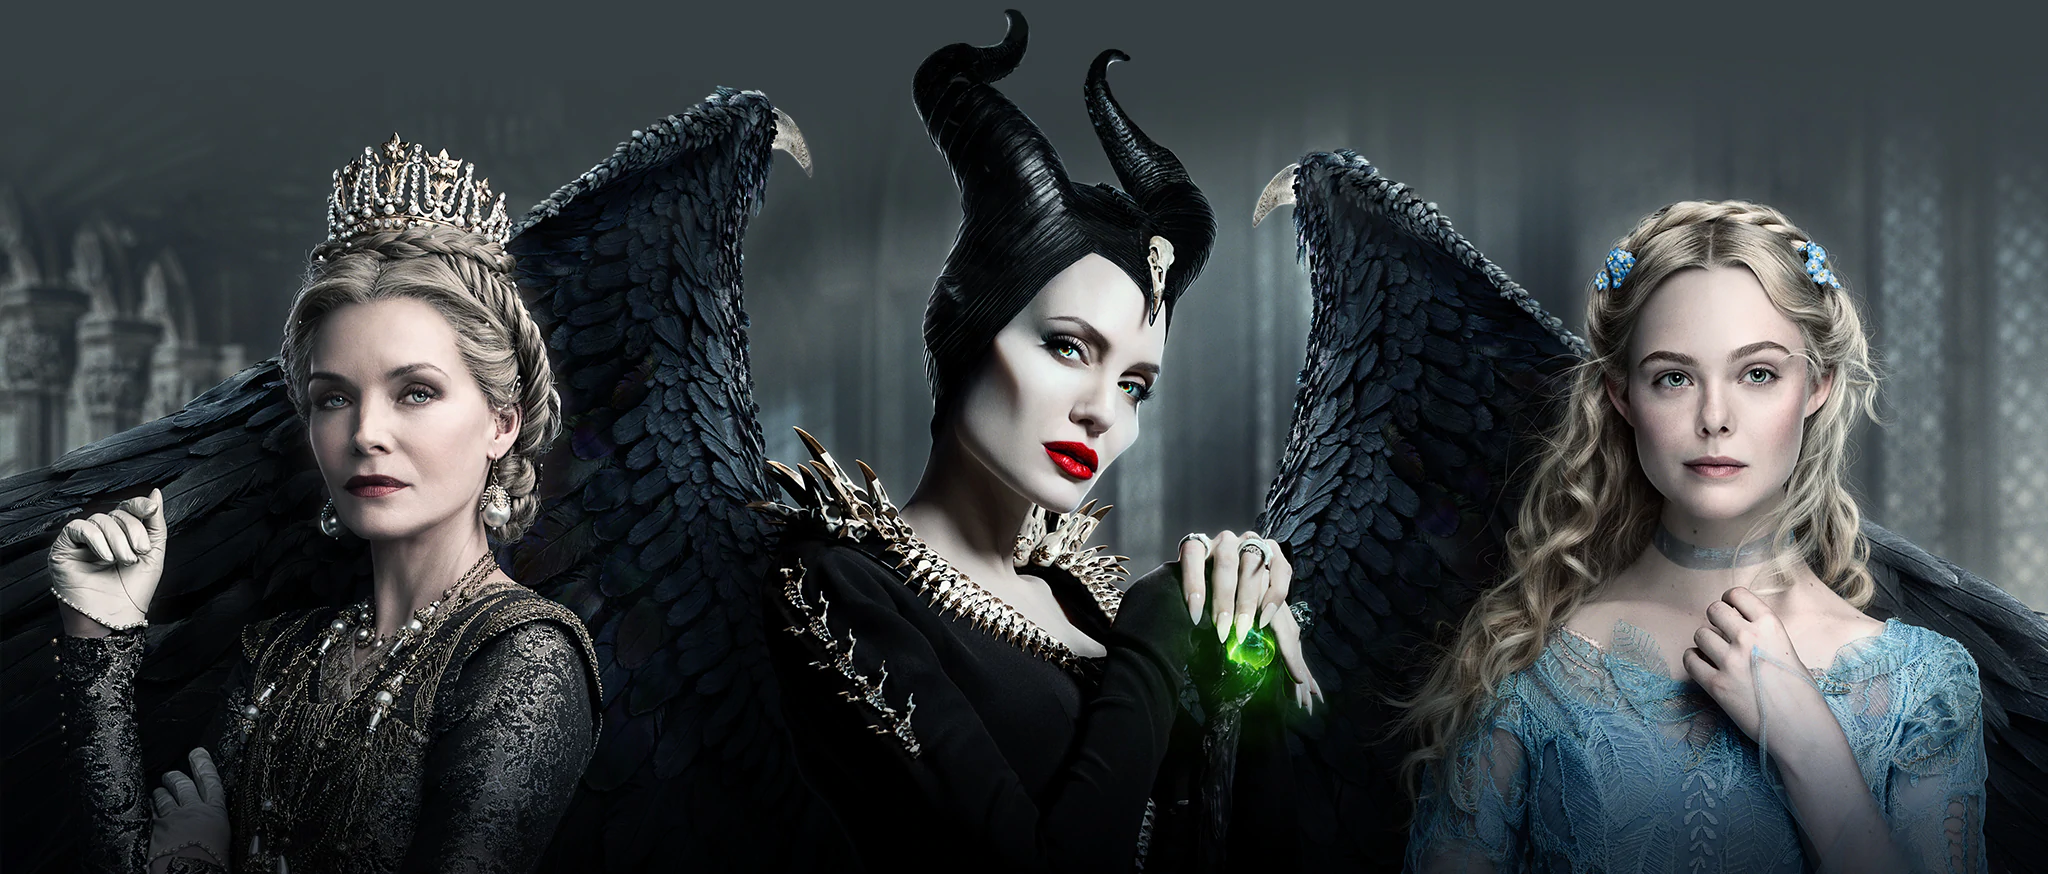 Maleficent Mistress Of Evil Revela Espectaculo Visual En